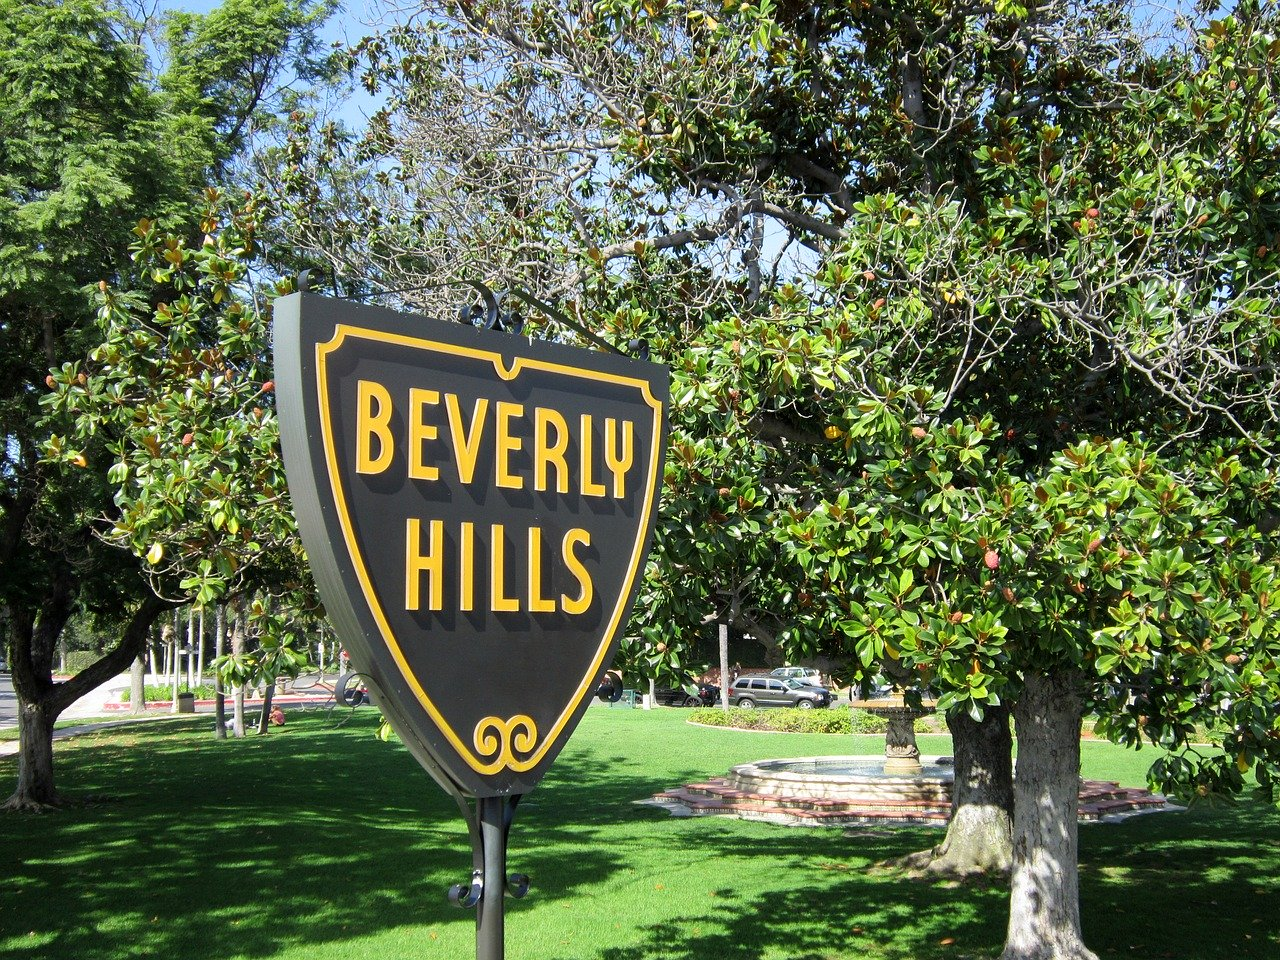 A park in Beverly Hills, CA.